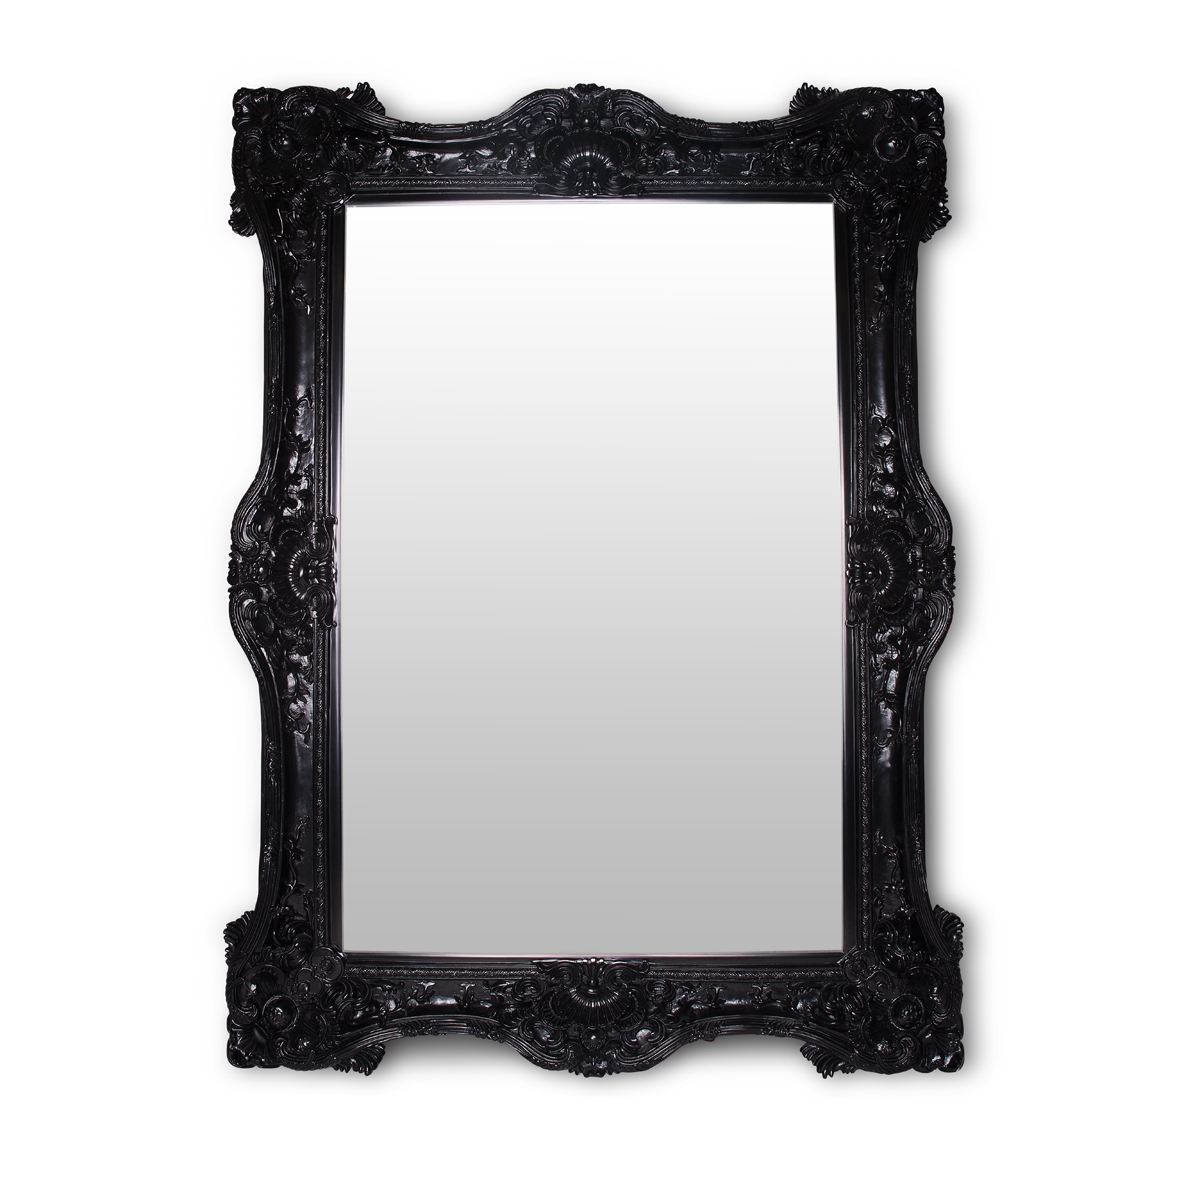 Black Baroque Mirror Glam Party Rentals Pertaining To Black Baroque Mirror (Image 8 of 15)